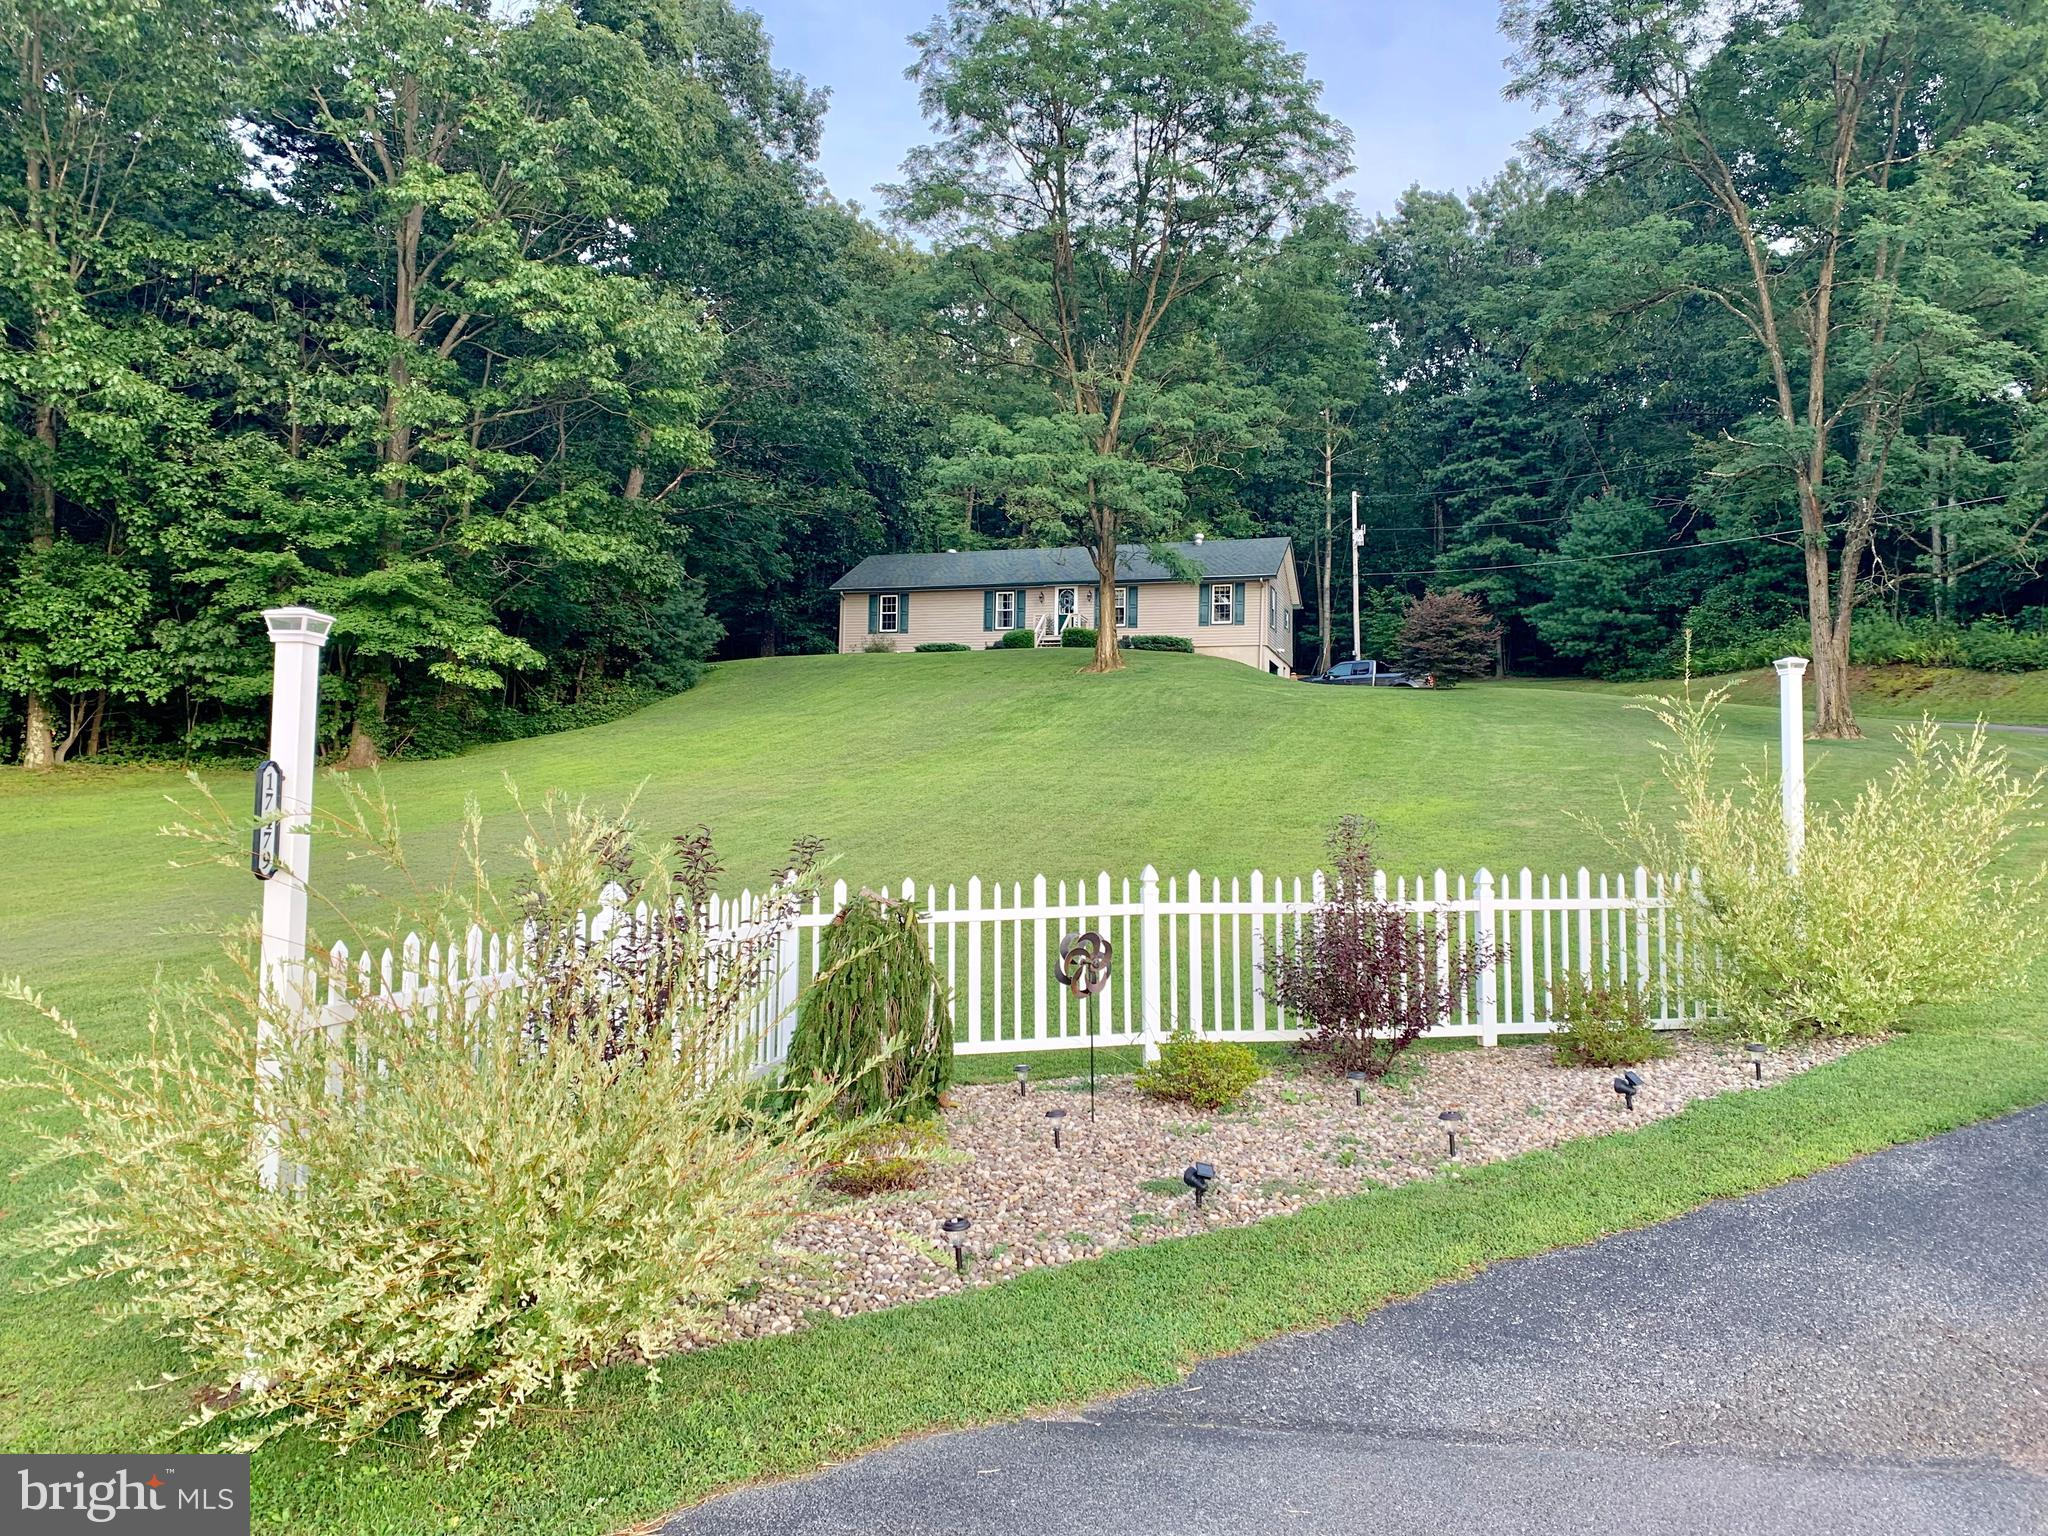 17479 COOKS ROAD, CASSVILLE, PA 16623